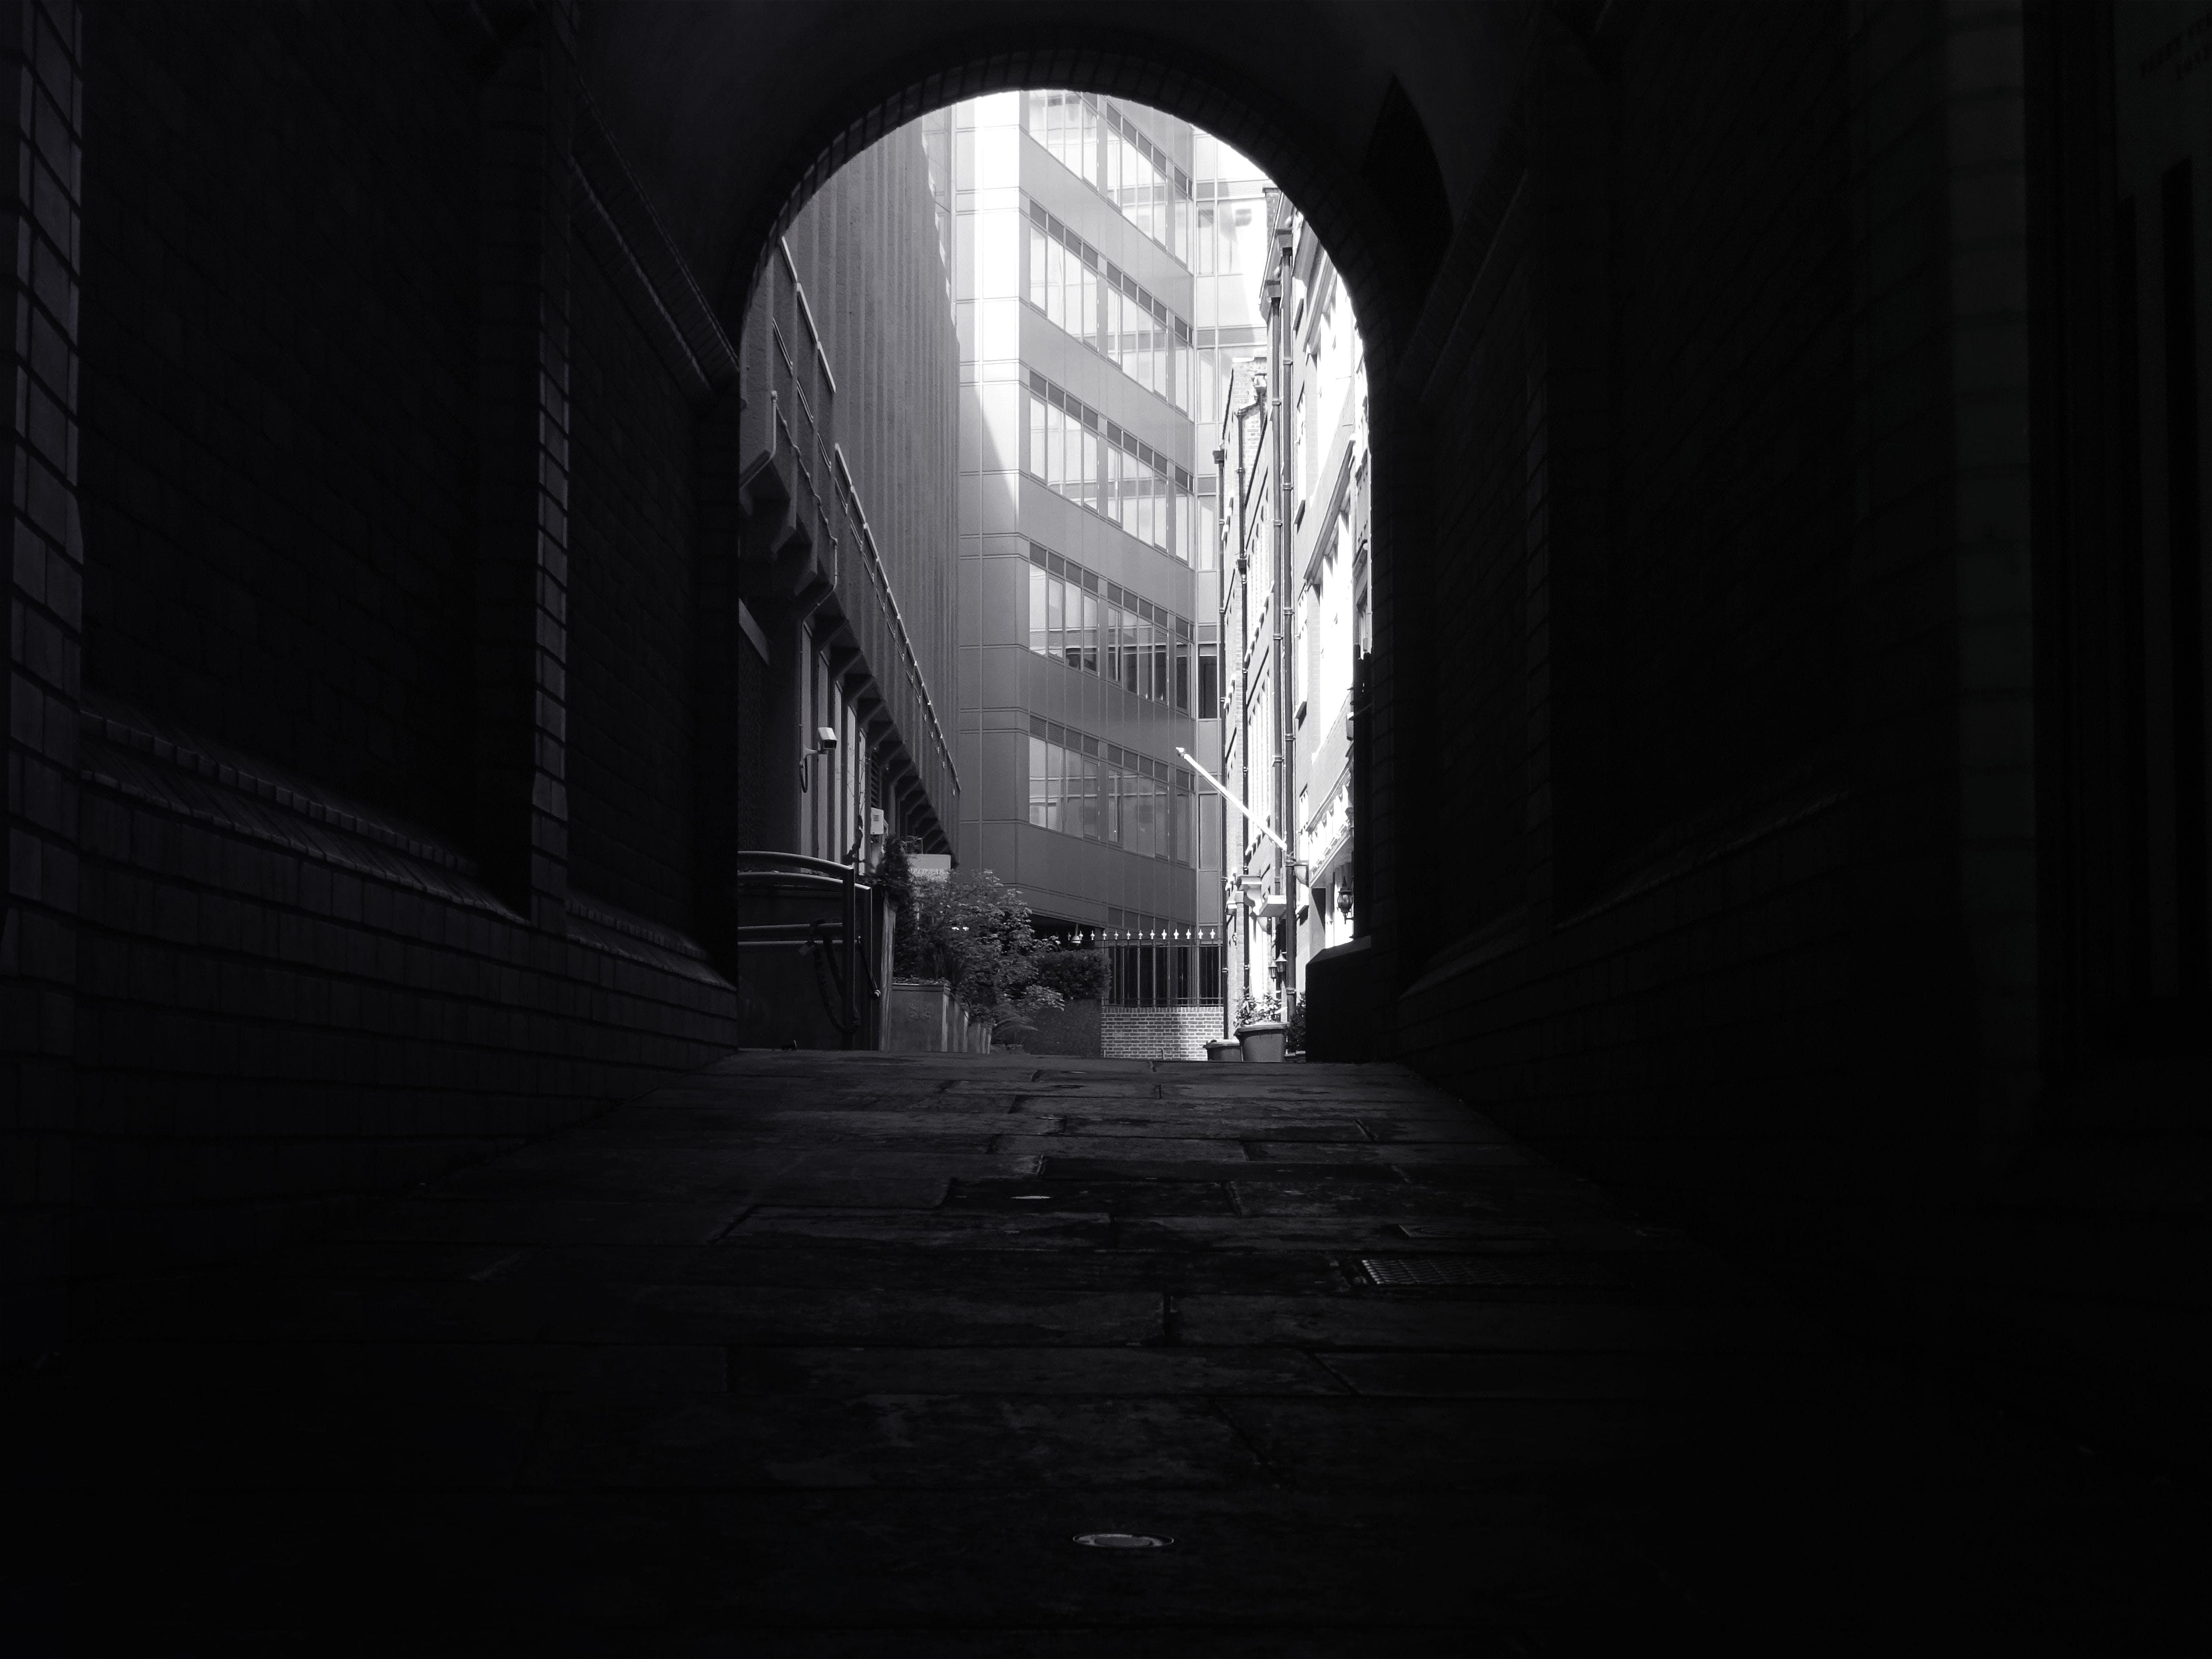 Free stock photo of black-and-white, city, landscape, street